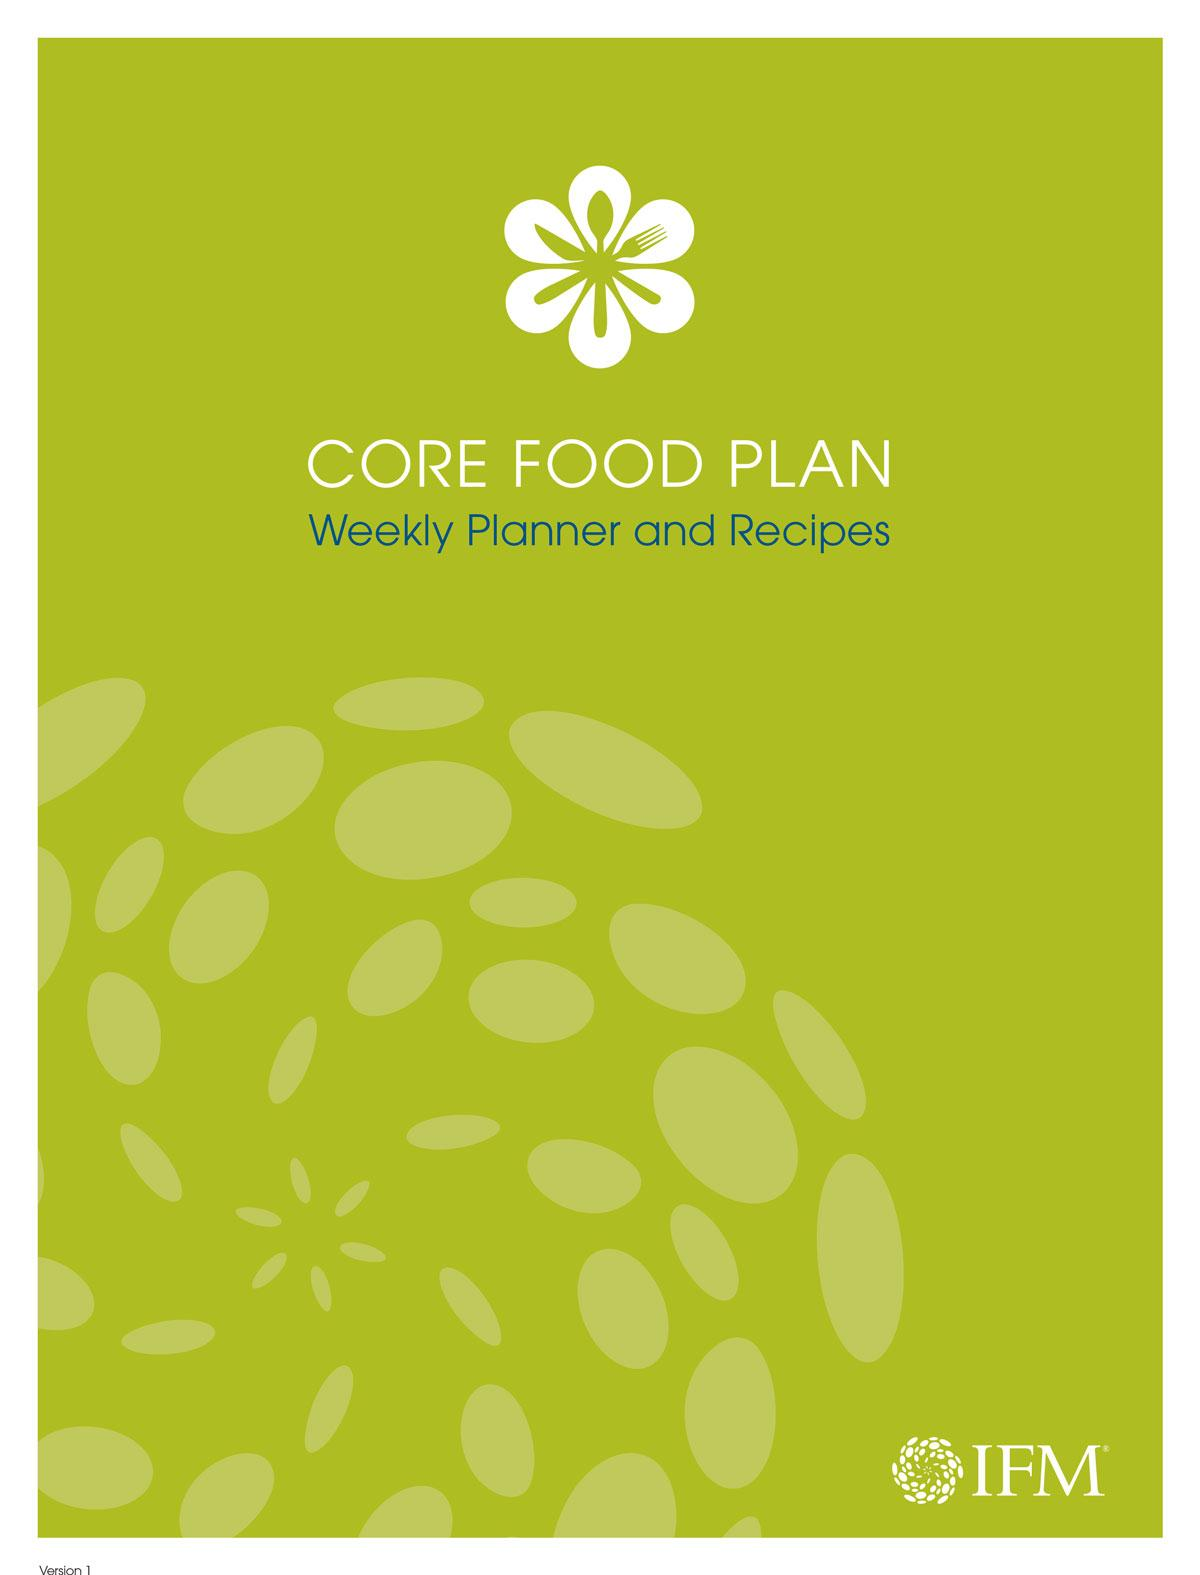 Core Food Plan Weekly Planner